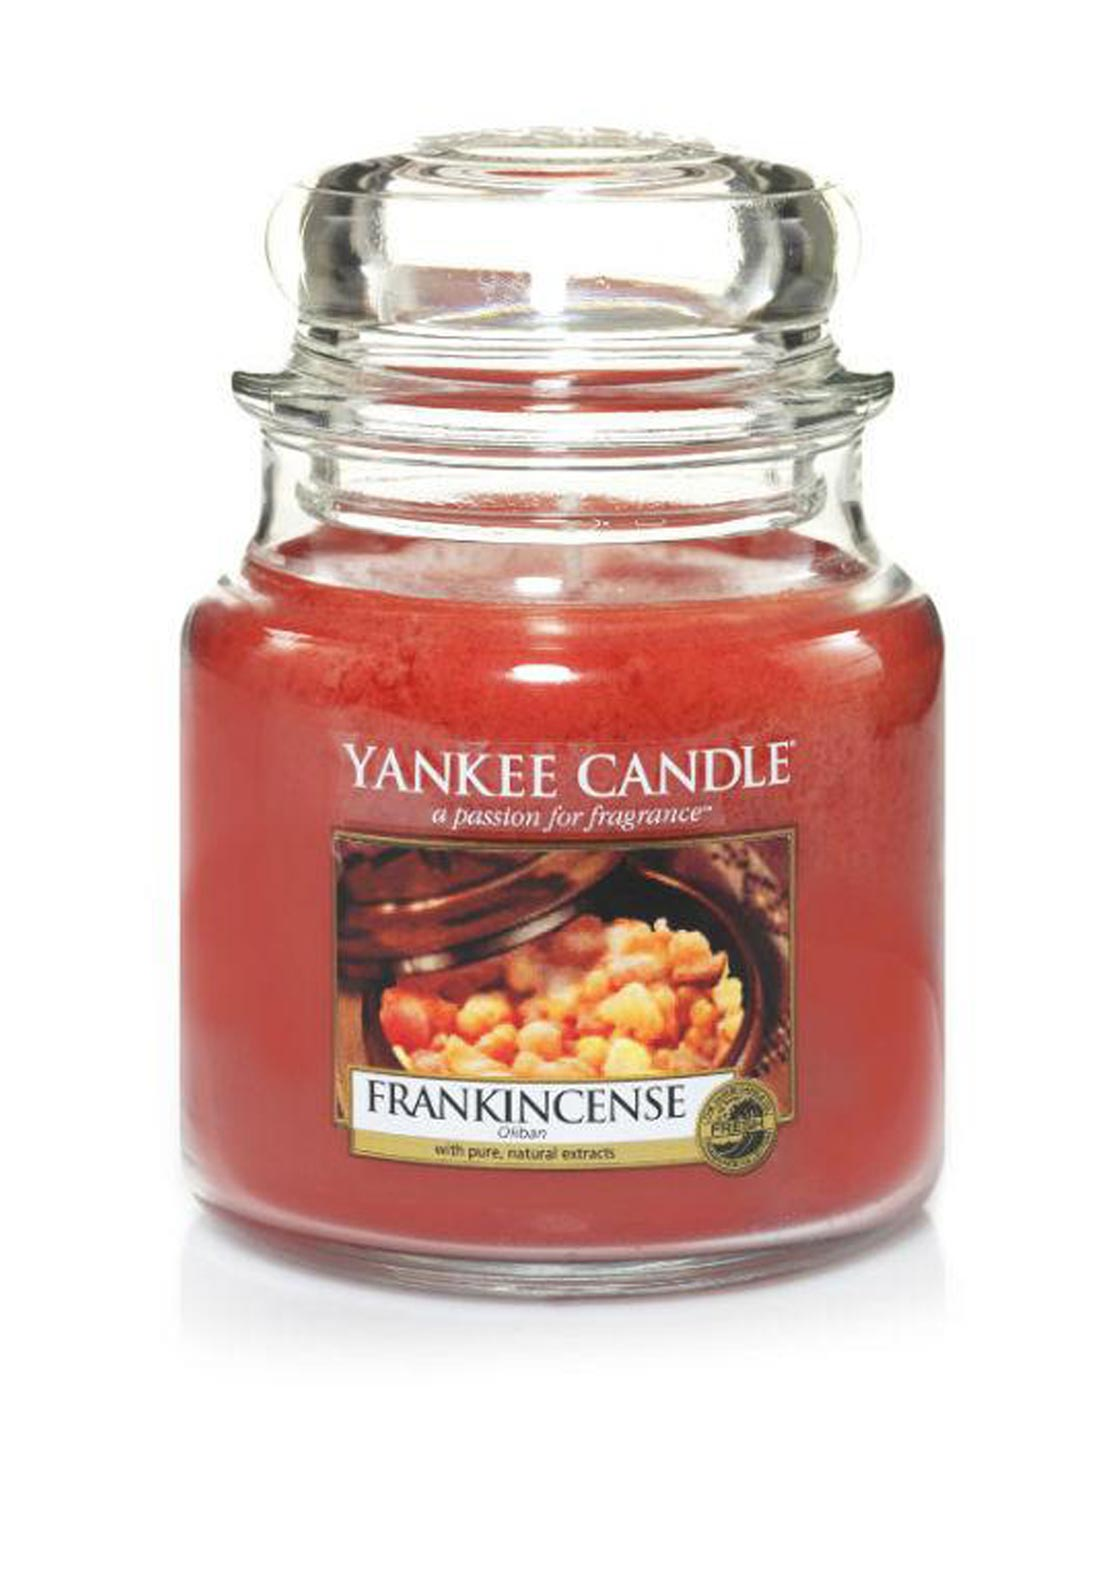 Yankee Candle Medium Classic Jar, Pink Grapefruit, Frankincense